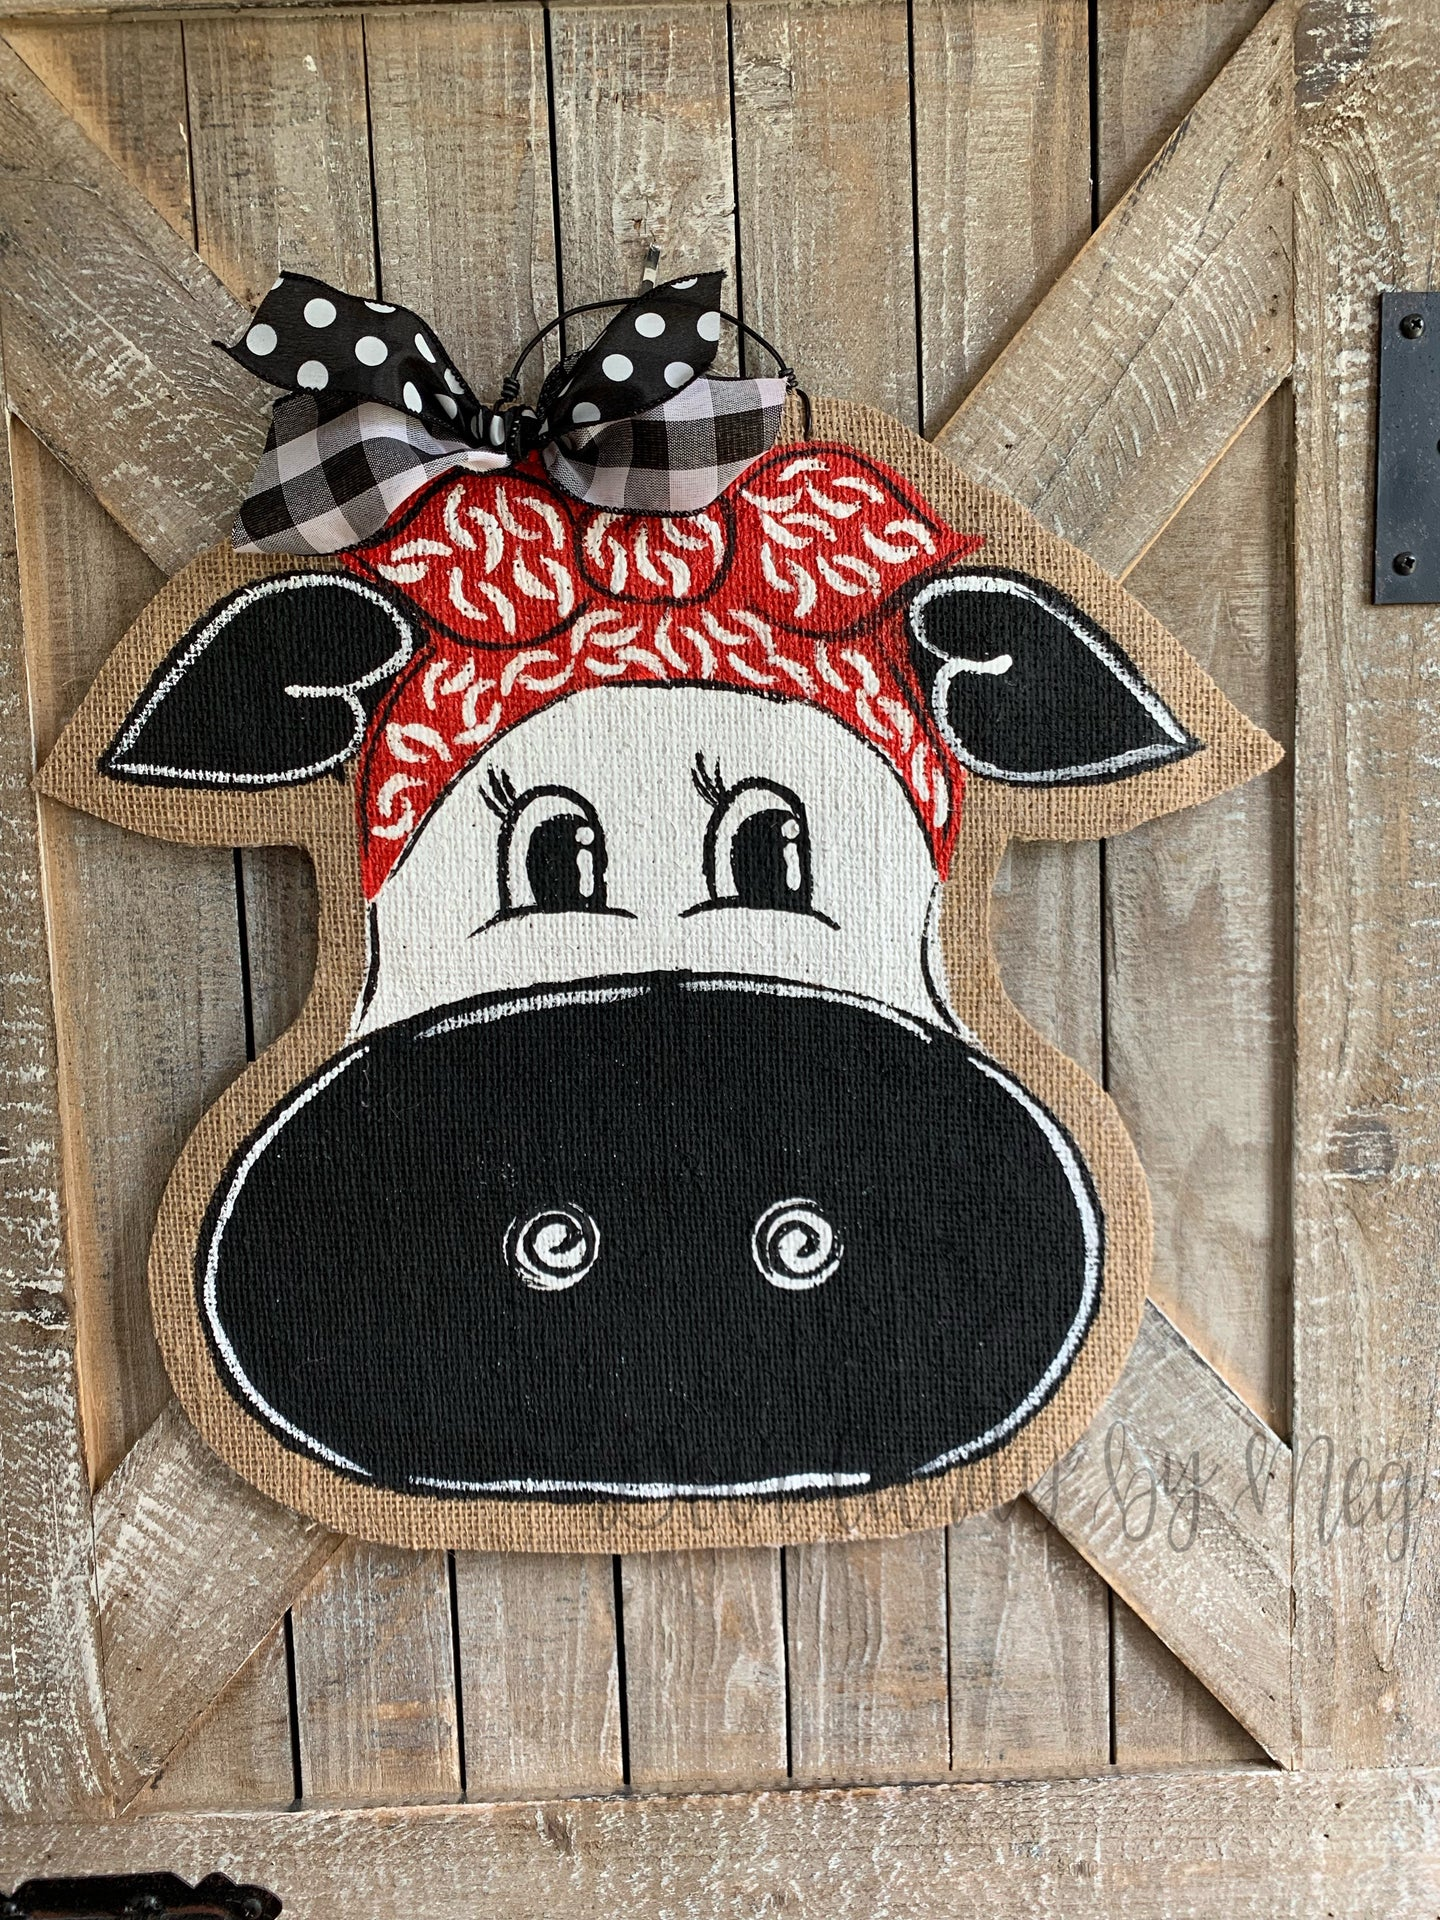 Cow Head Door Hanger - Whimsy Cow with Bandana